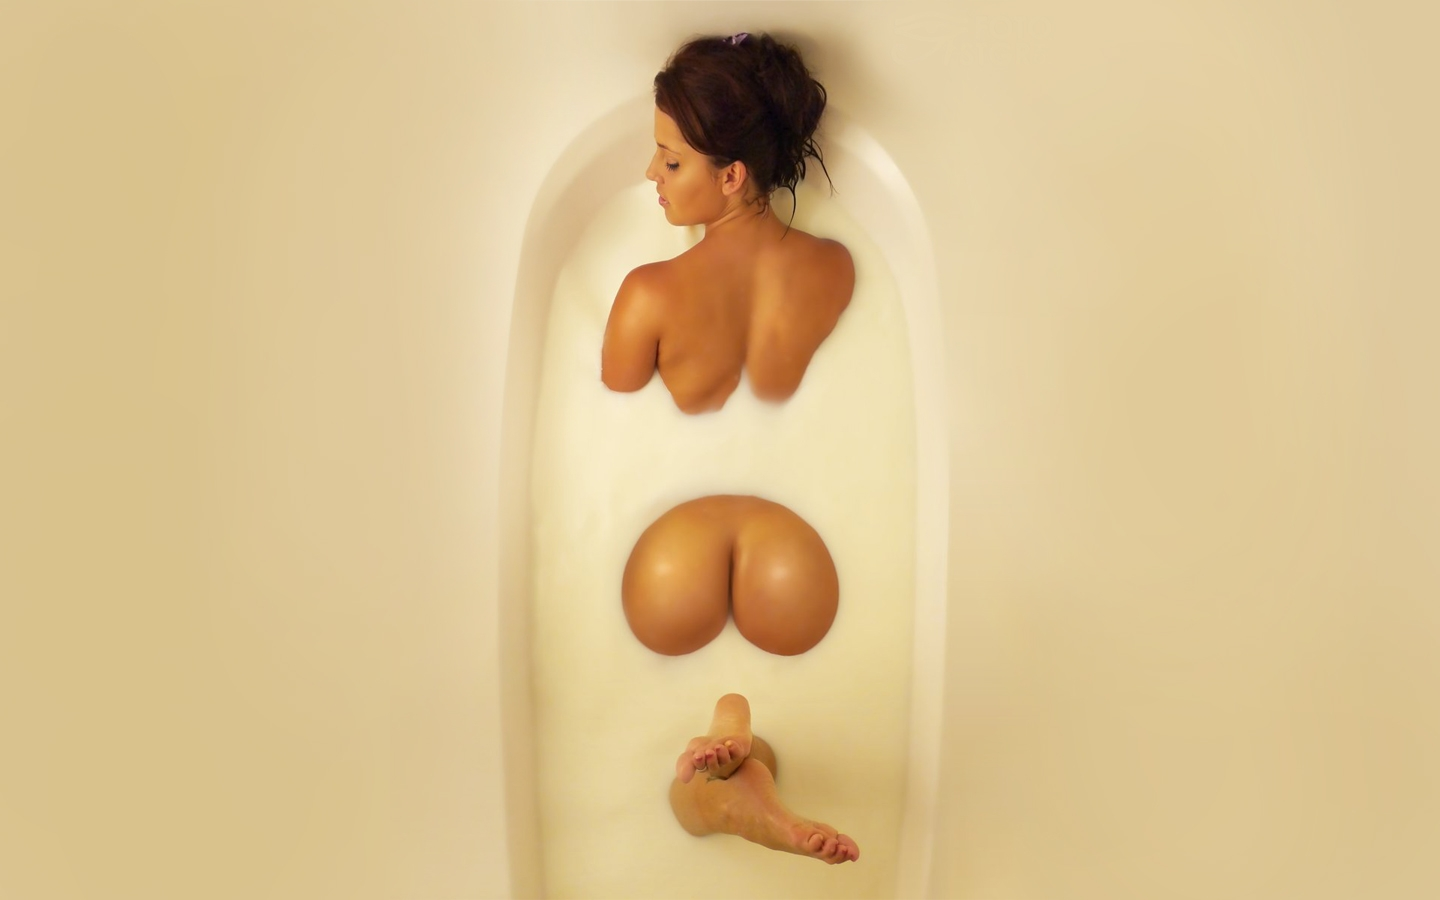 milk-bath-ass-8899-wallpapers